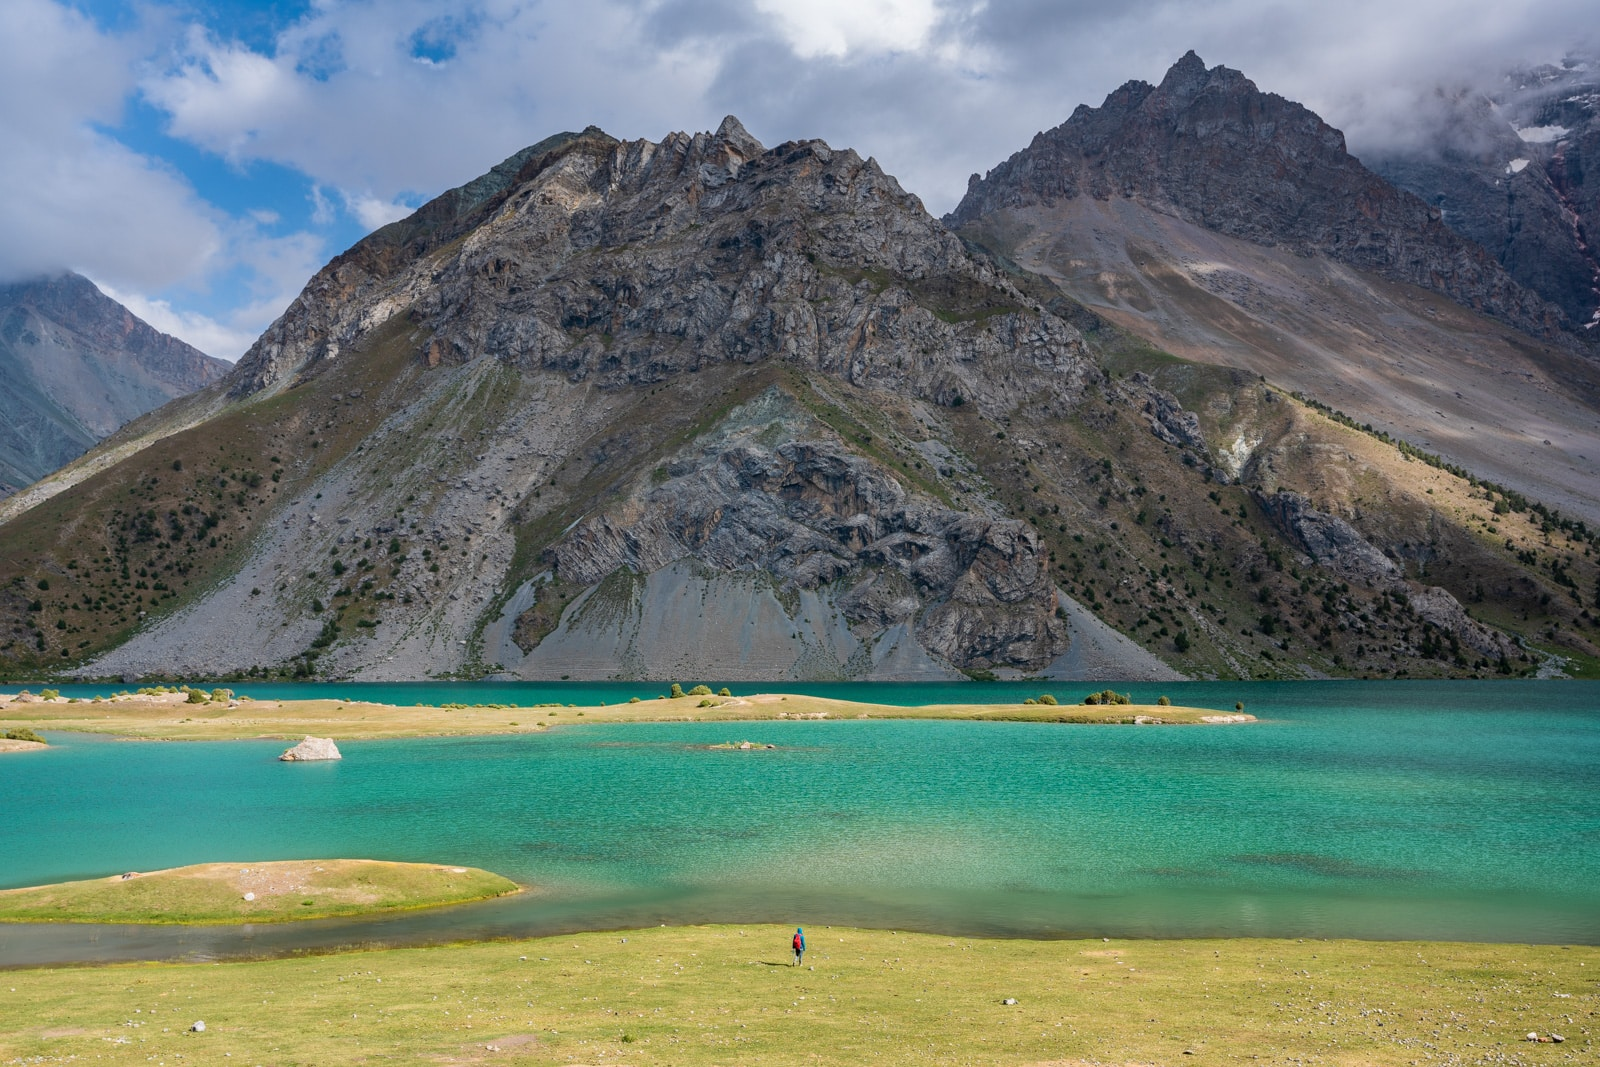 Man standing next to Kulikalon Lake in Tajkistan